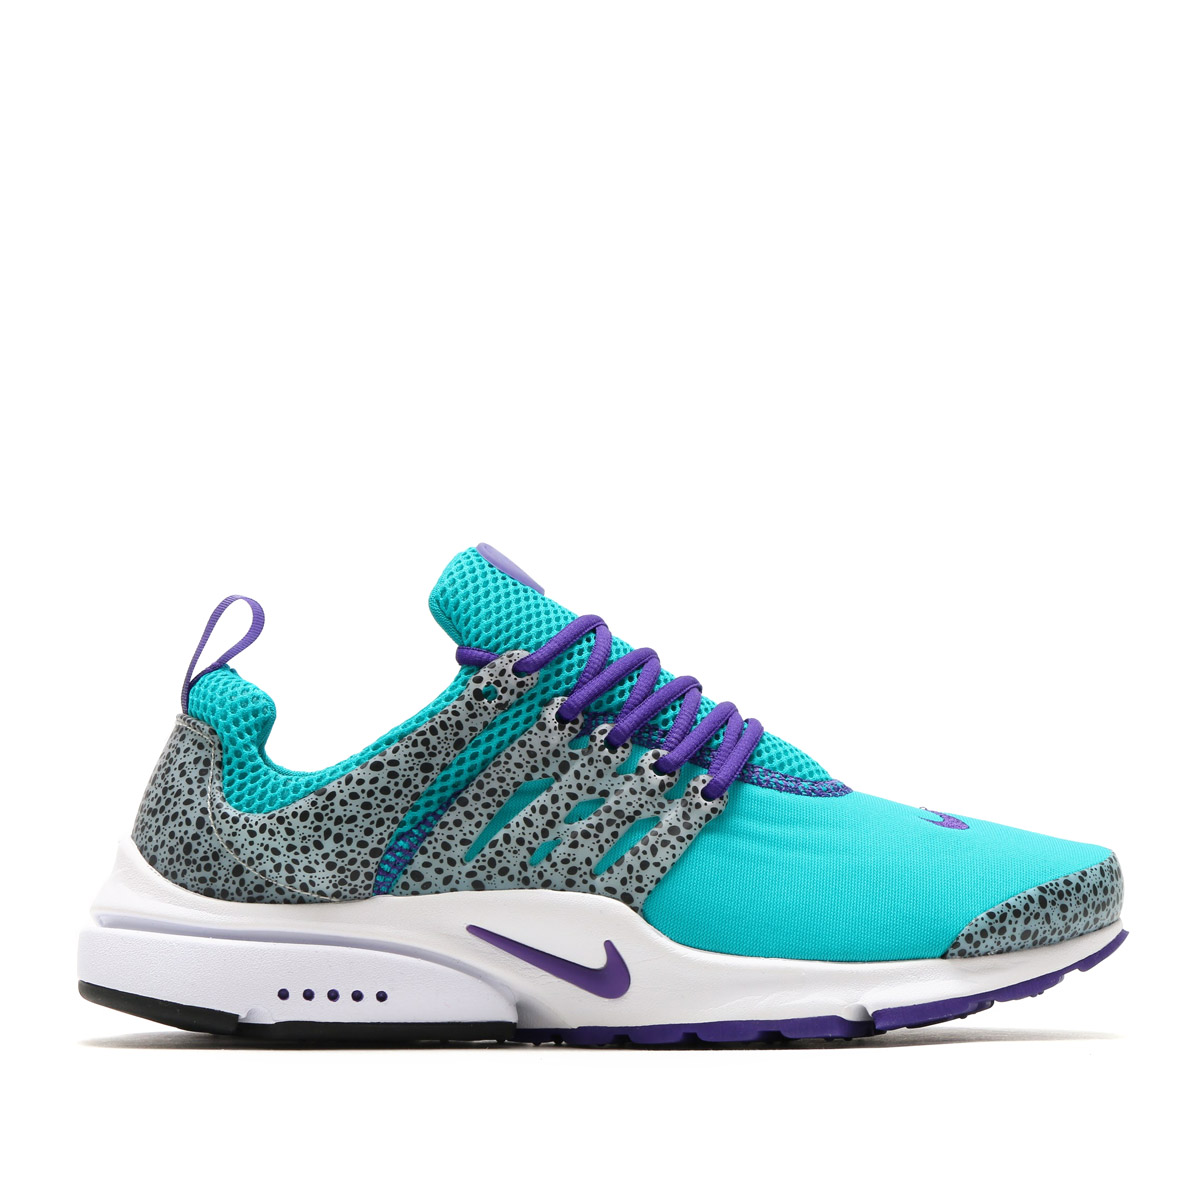 ff9d302aff1 NIKE AIR PRESTO QS (Kie Ney apr strike QS) (TURBO GREEN COURT PURPLE-PURE  PLATINUM) 17SU-S